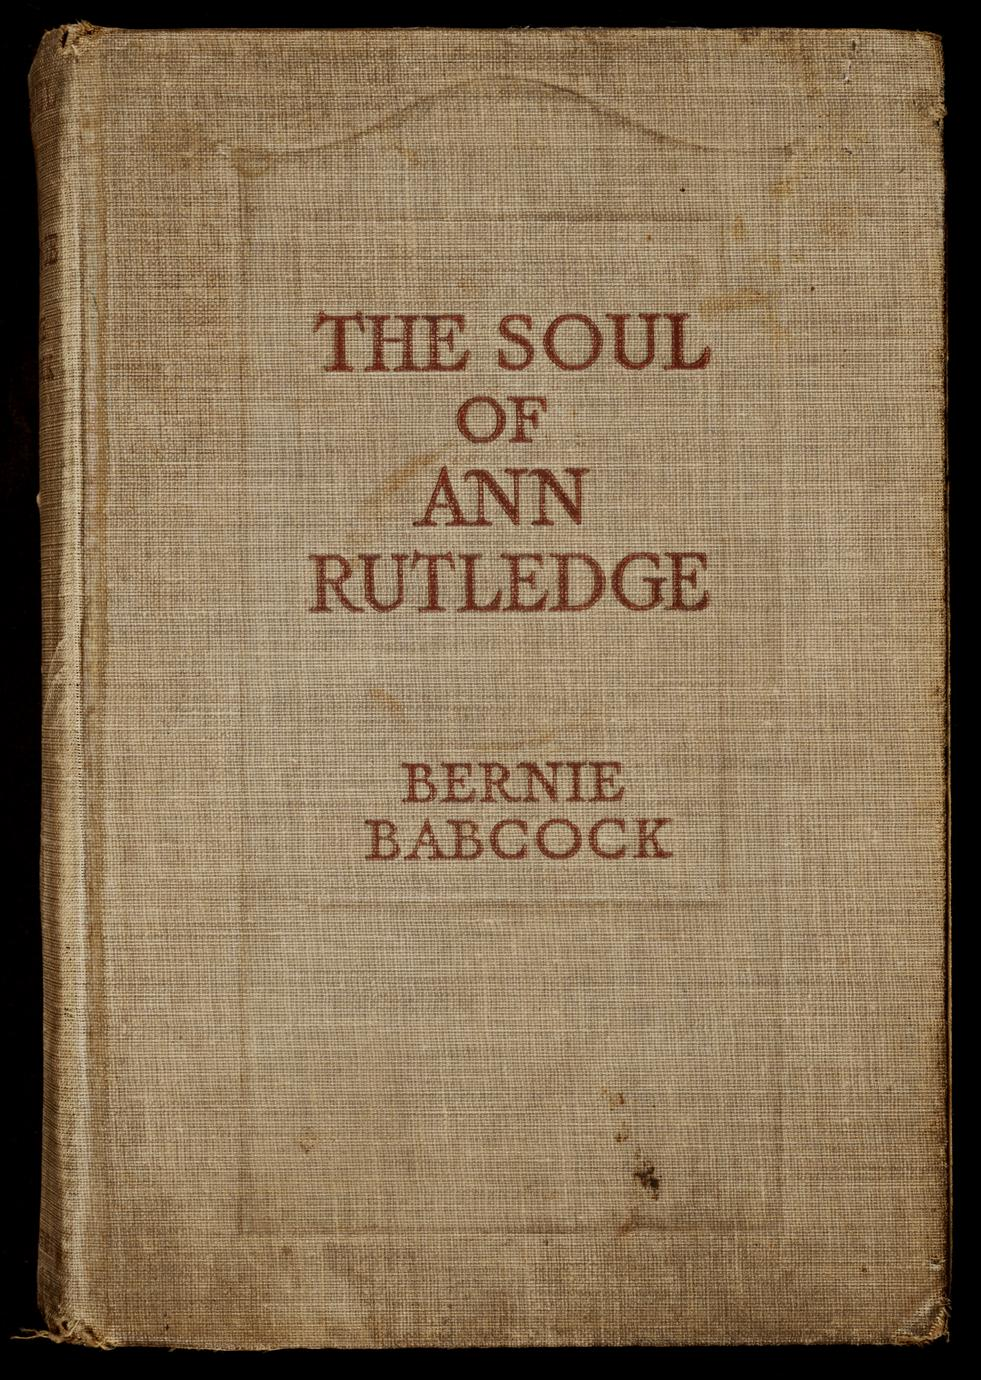 The soul of Ann Rutledge : Abraham Lincoln's romance (1 of 2)